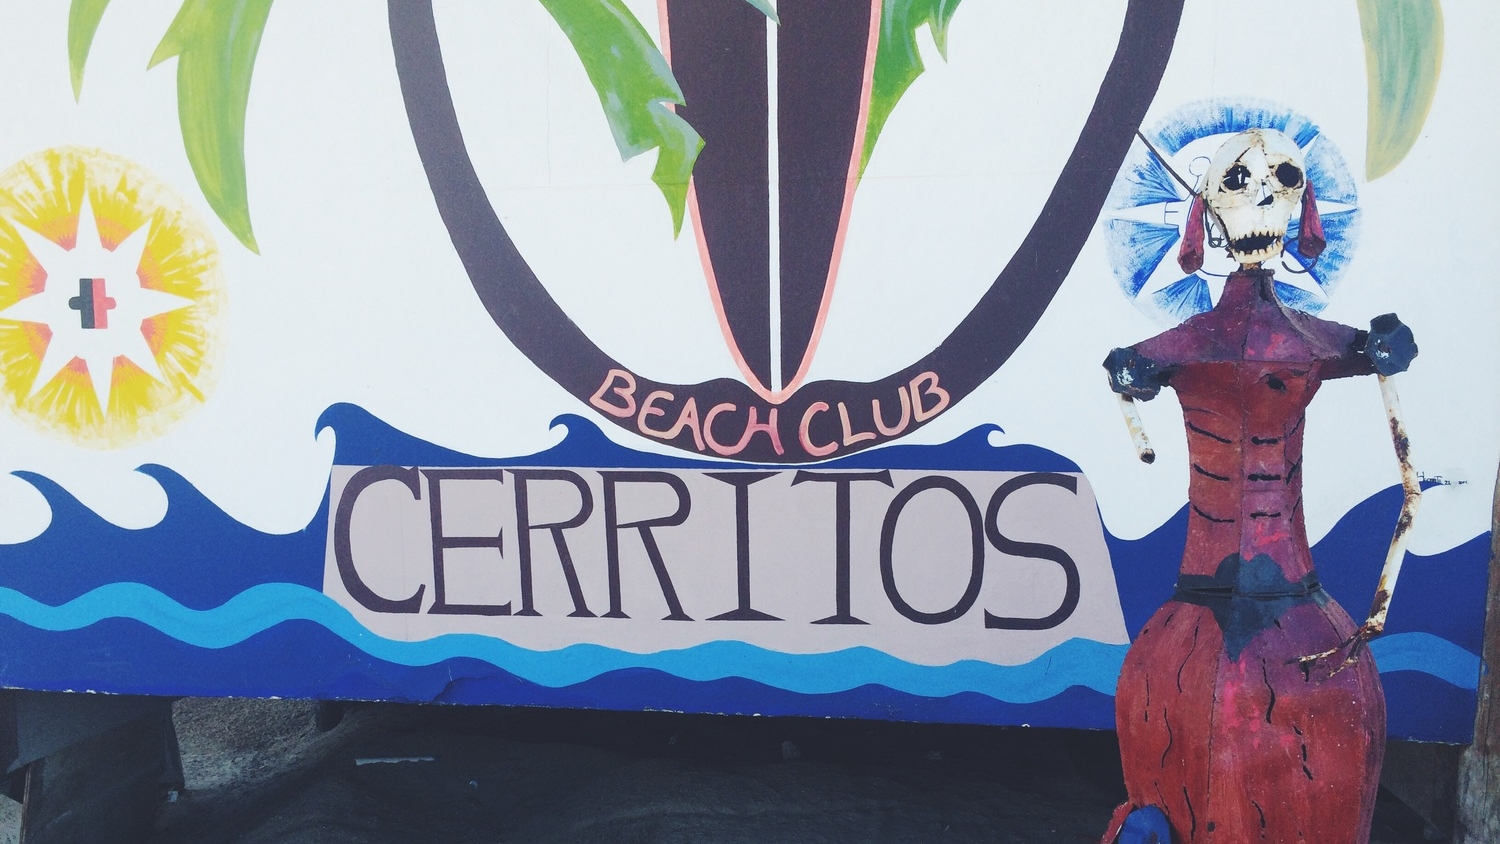 Cerritos Beach Club, Baja